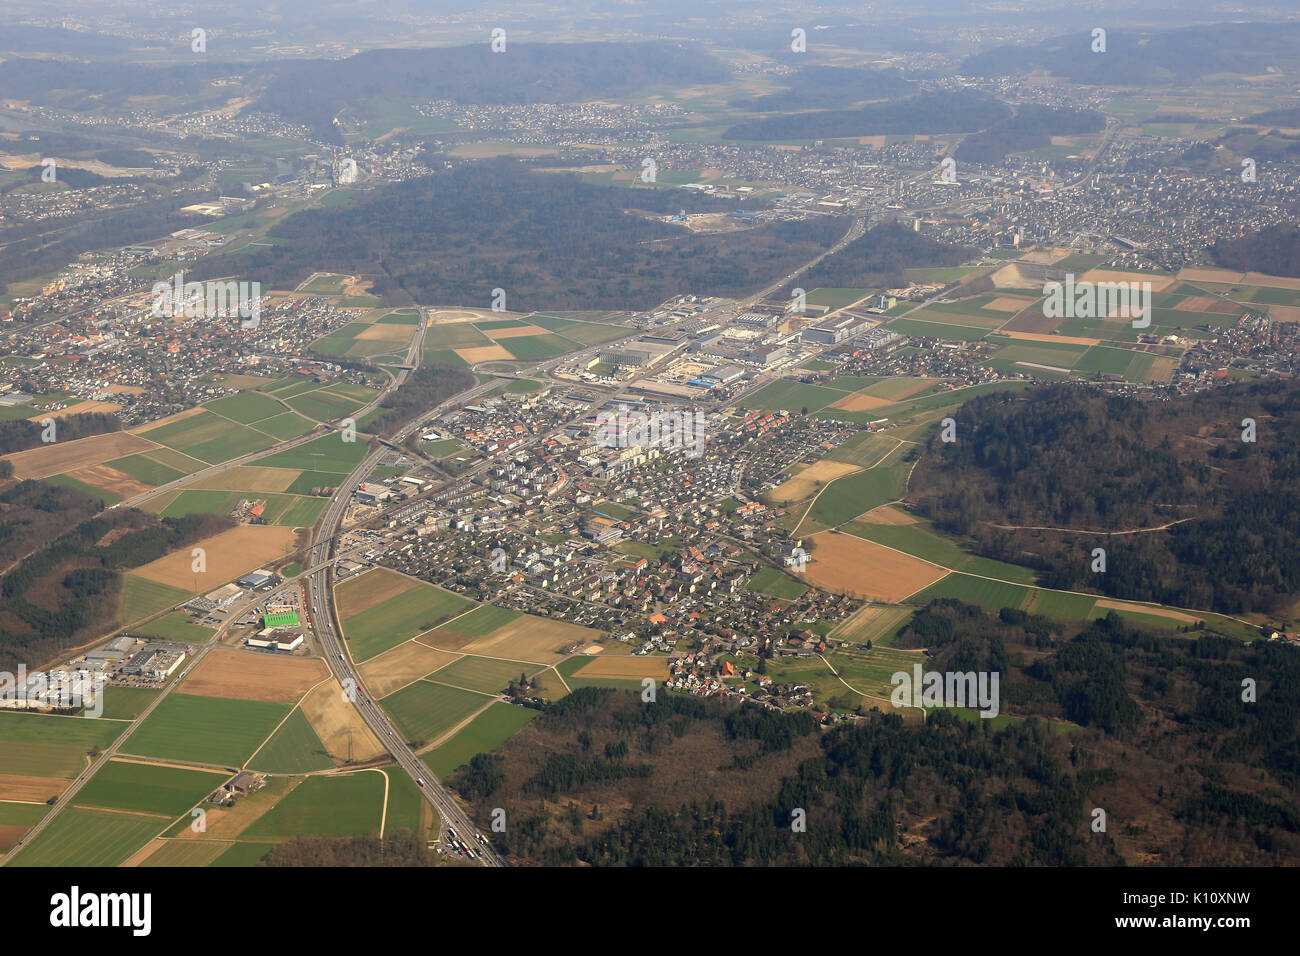 Hunzenschwil Canton Aargau Switzerland aerial view photography photo - Stock Image